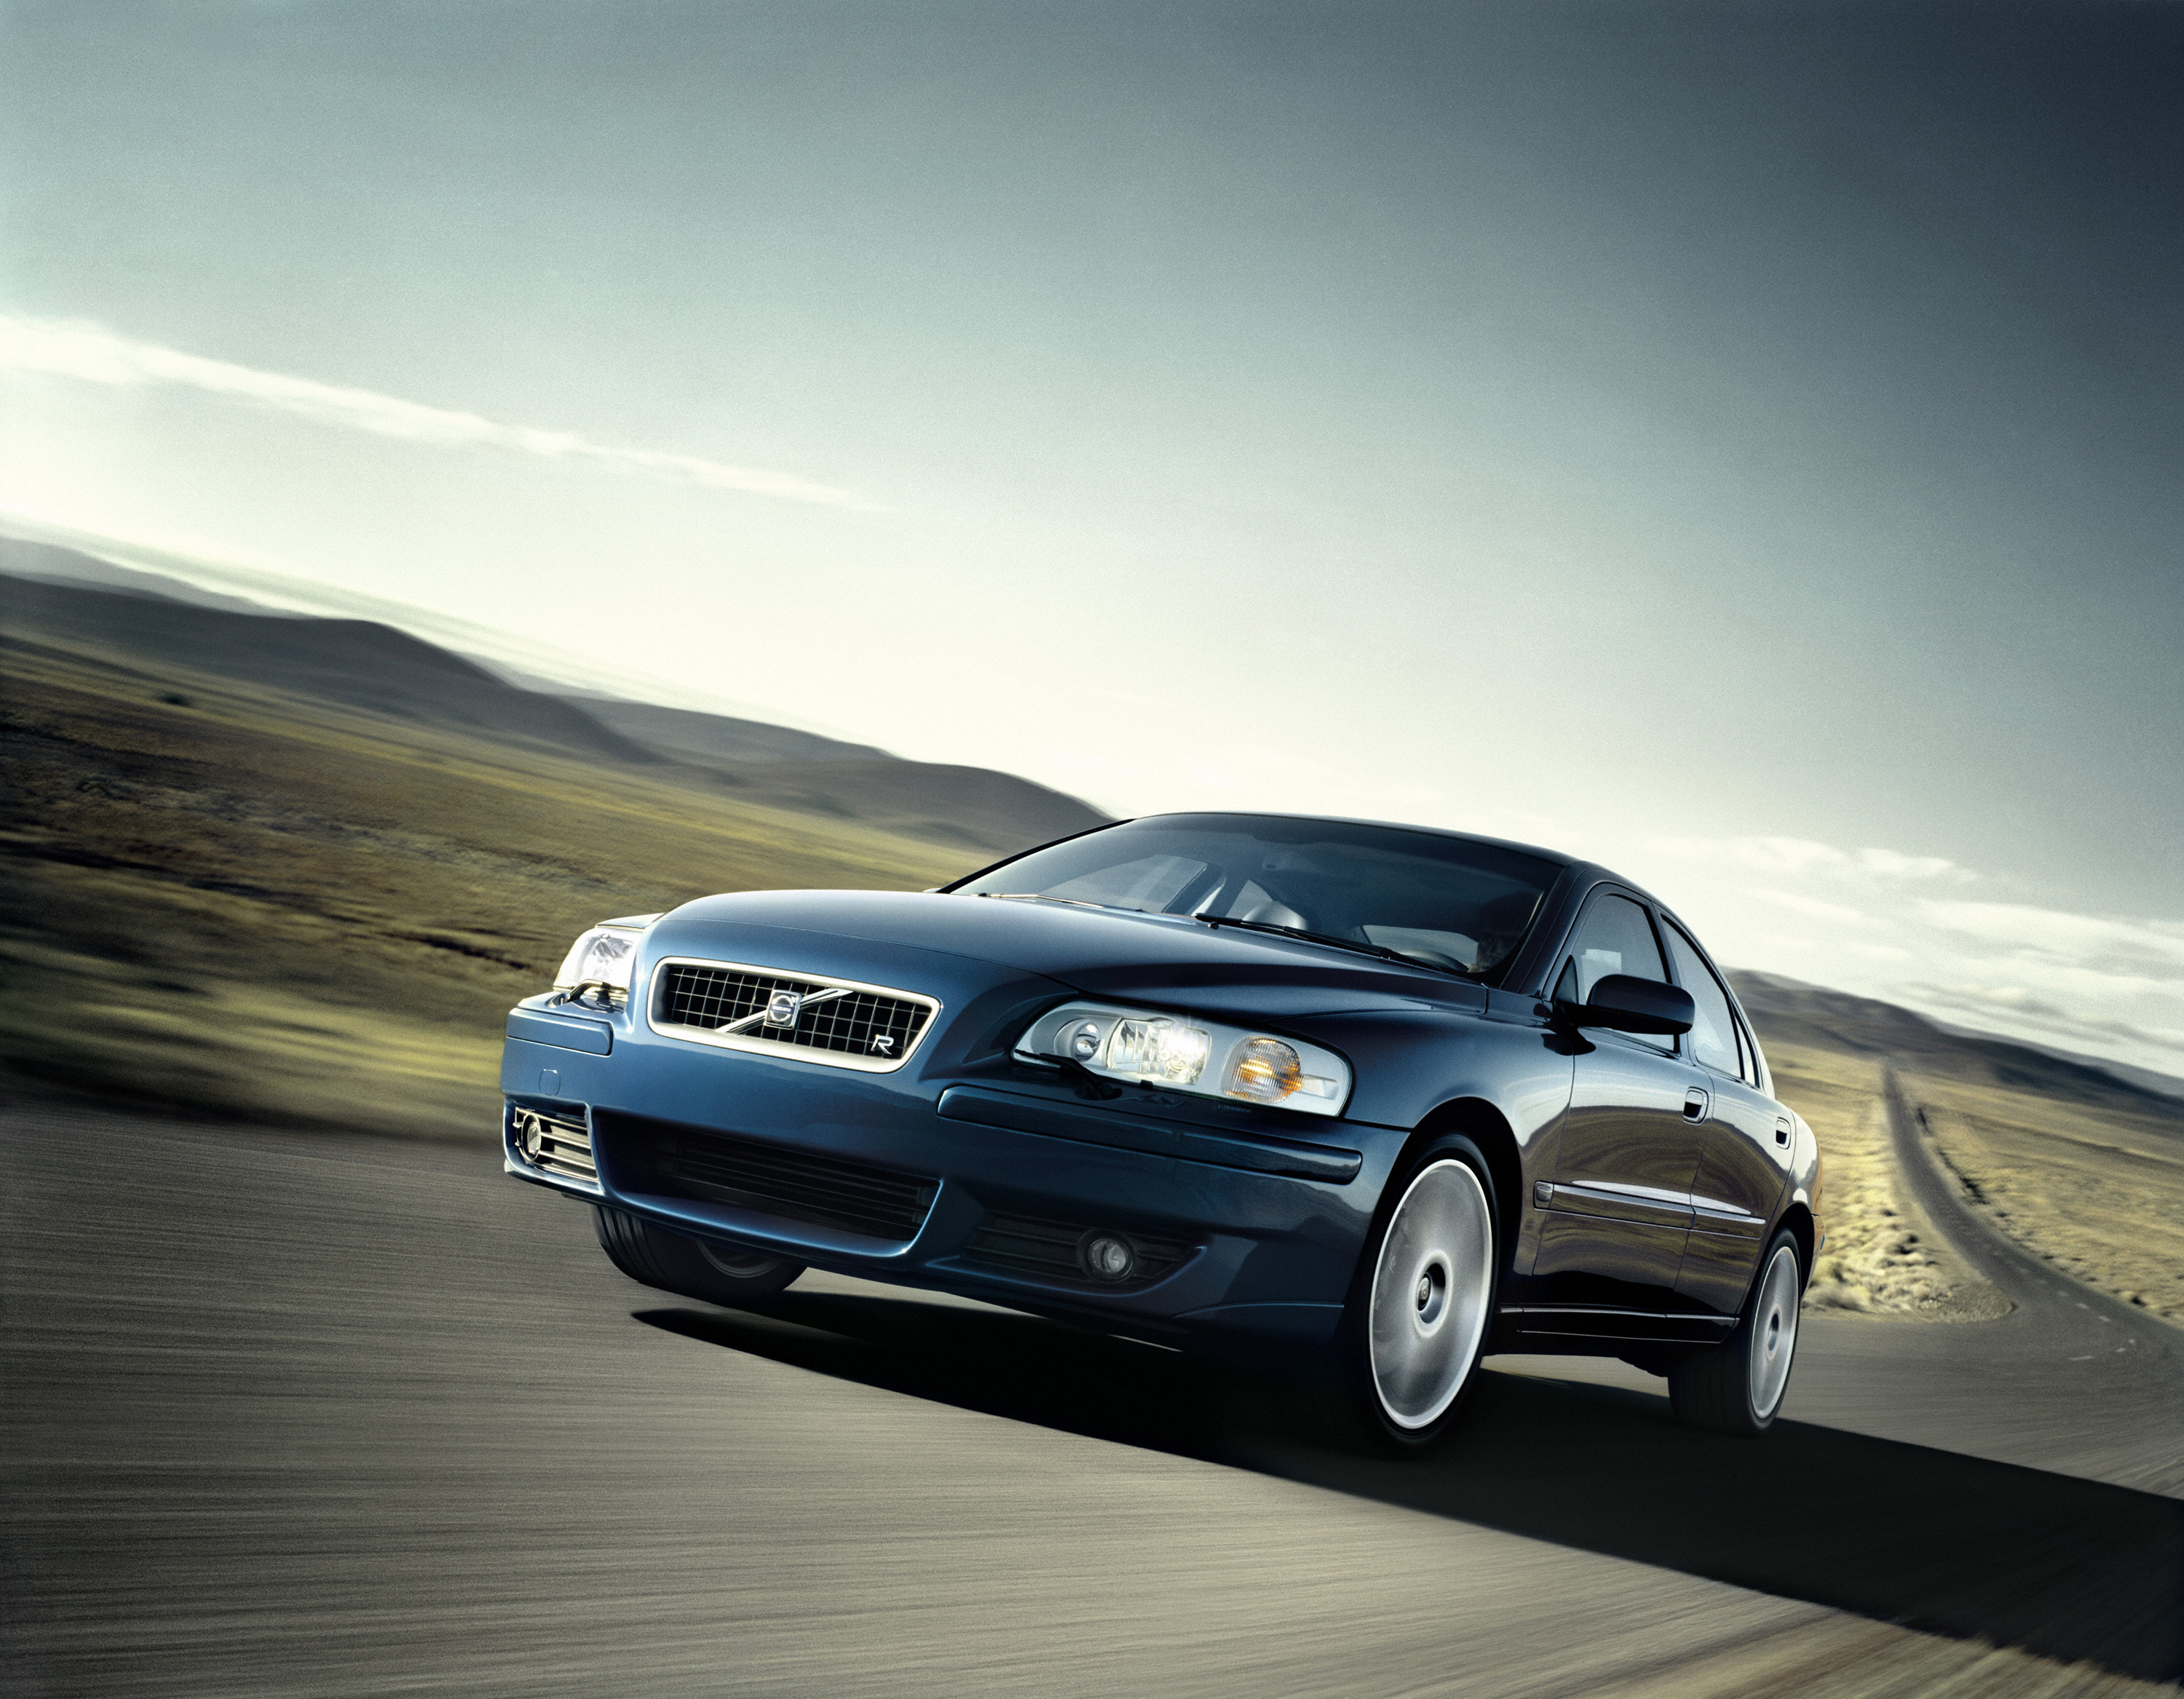 2006 Volvo V70 R | Top Speed